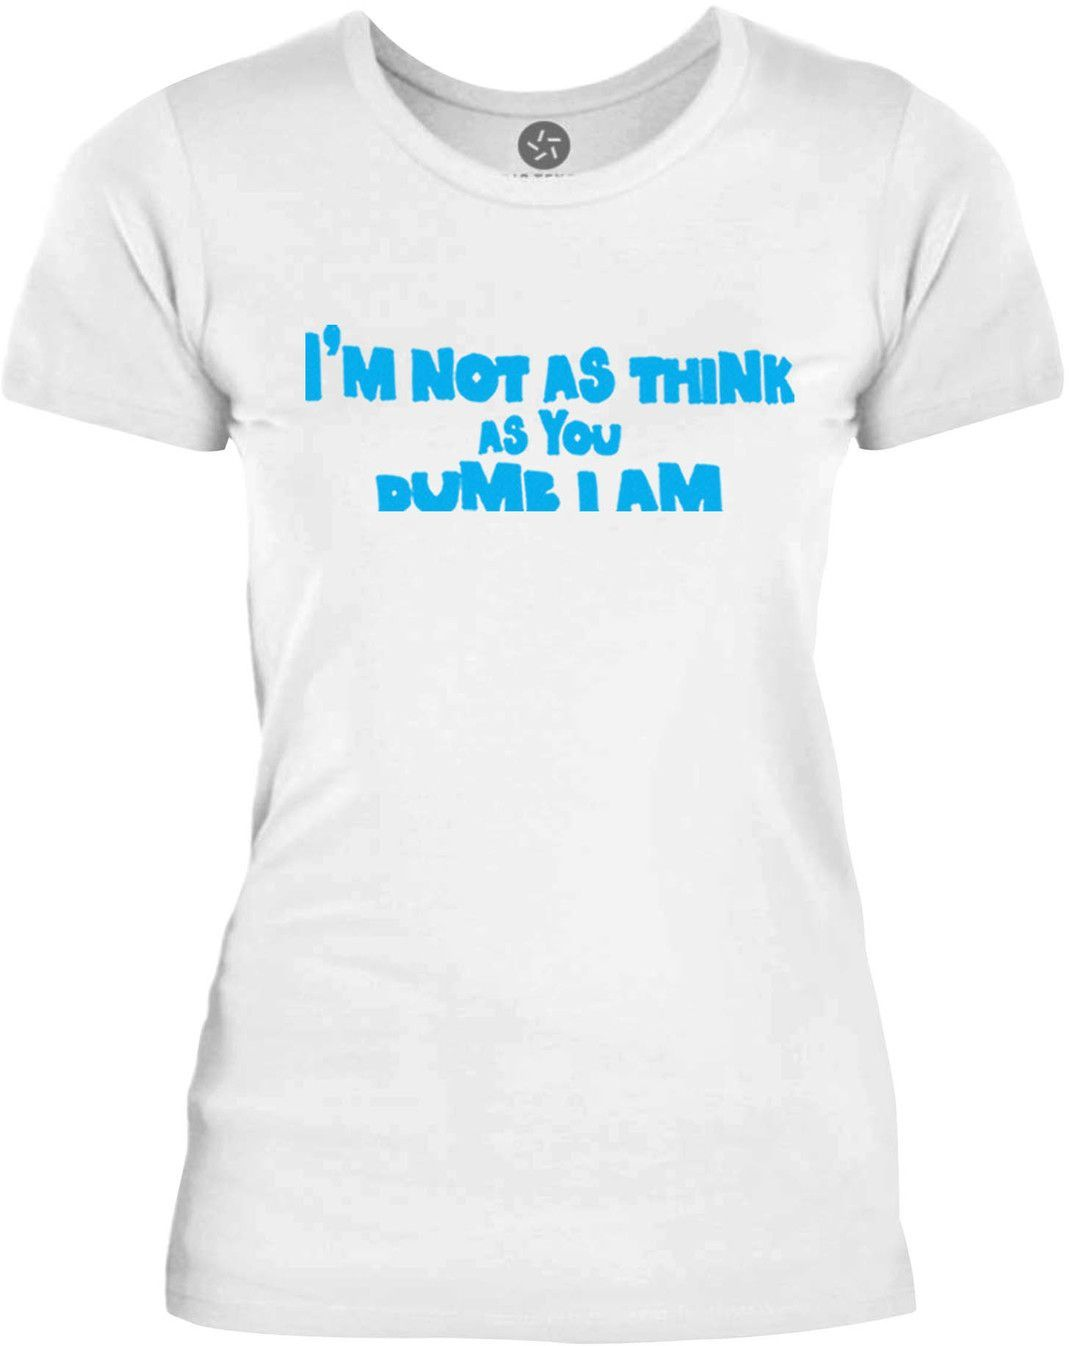 Big Texas Im Not As Think As You Dumb I Am (Blue) Womens Fine Jersey T-Shirt